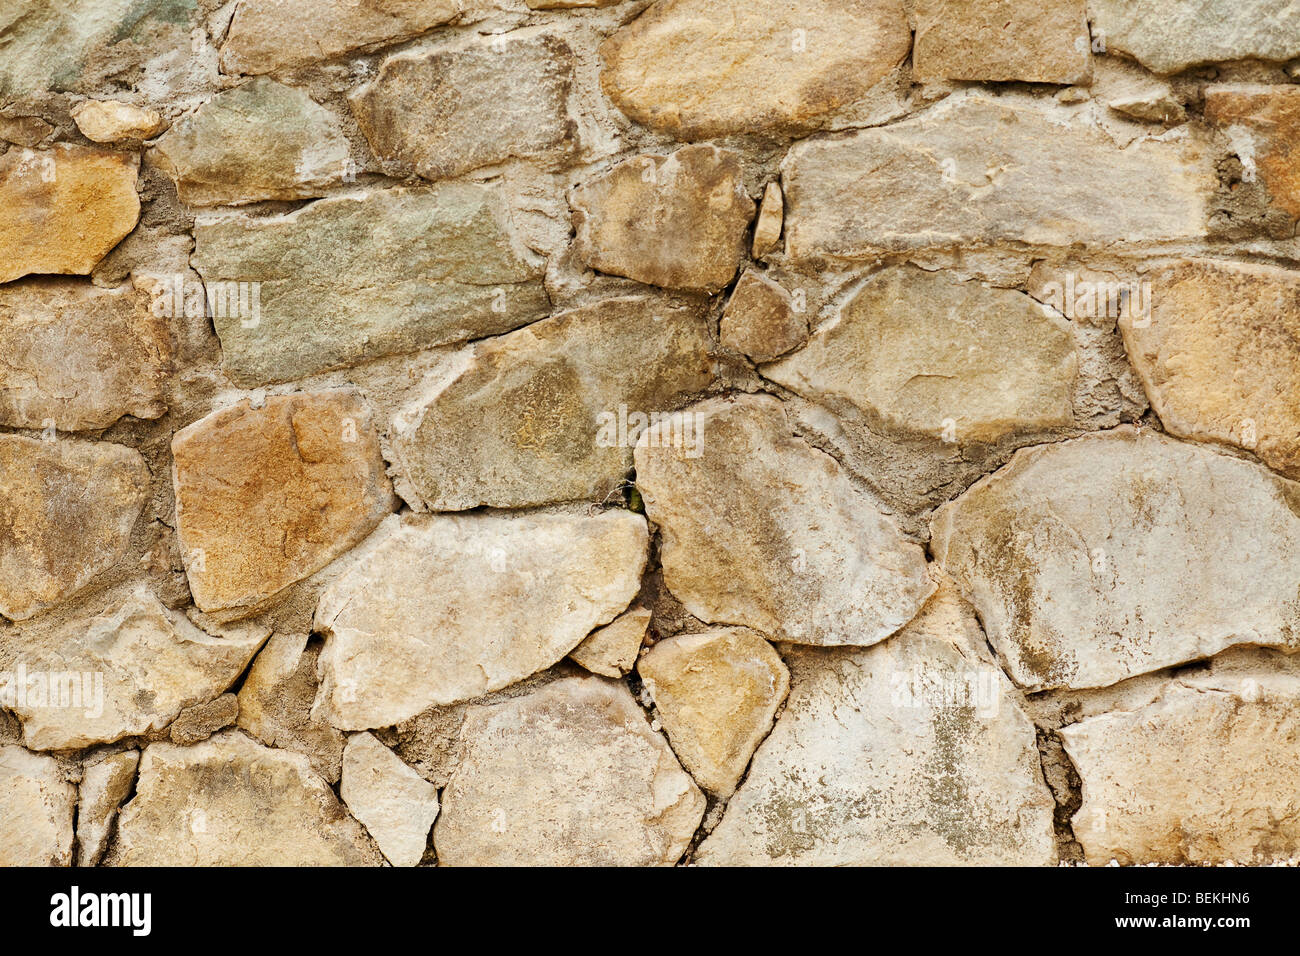 stone wall background shot with a macro lens - Stock Image